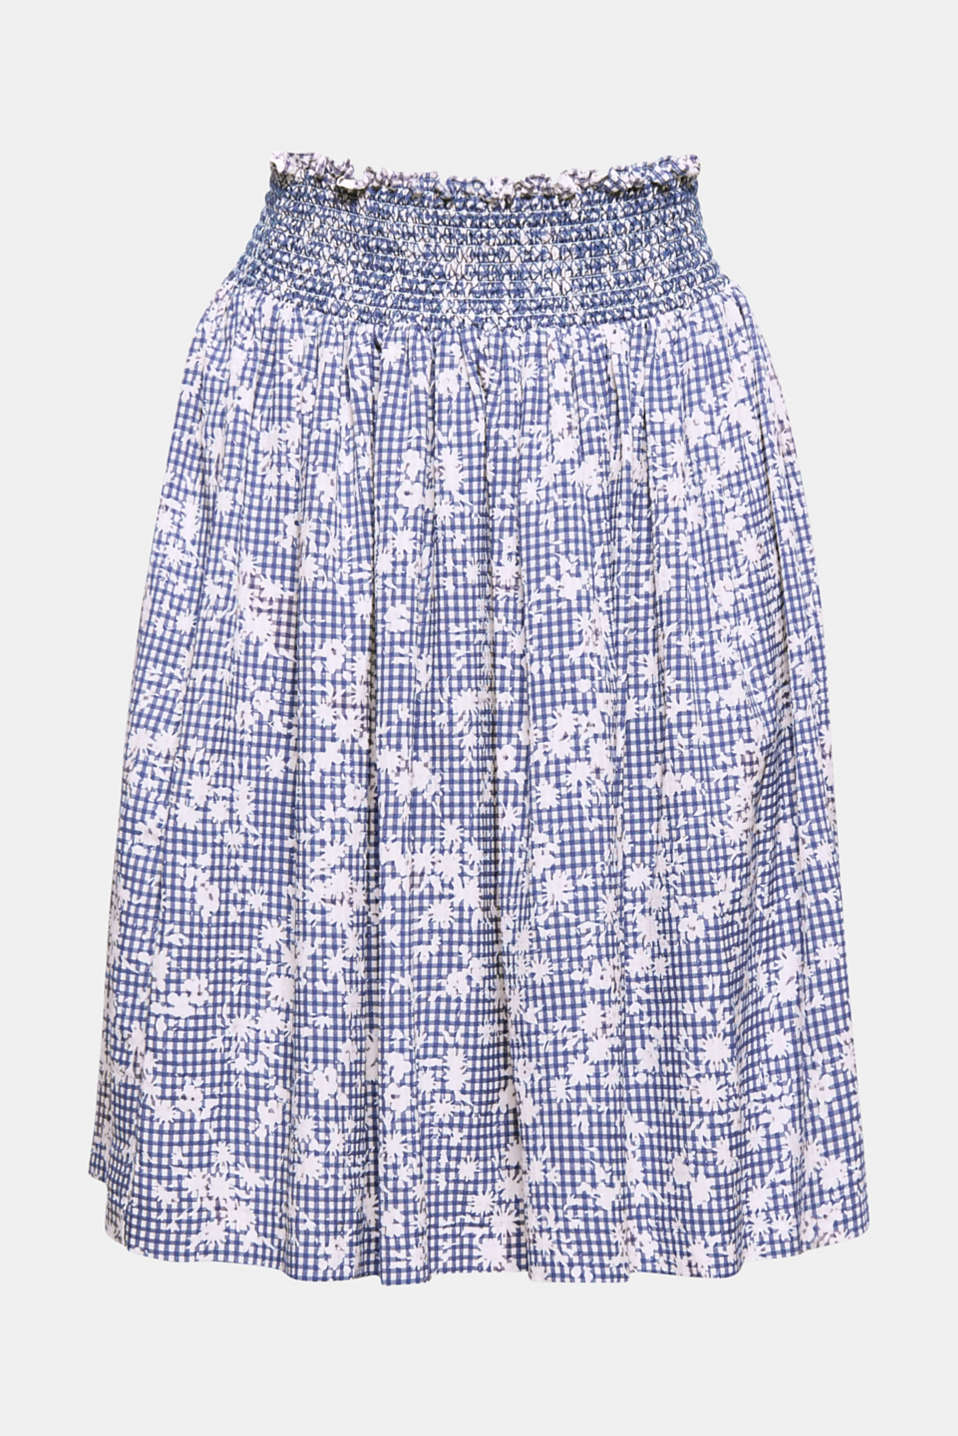 Gives your summer style a swing: this airy, flared skirt with gingham check pattern with flowers and wide smocked waistband.